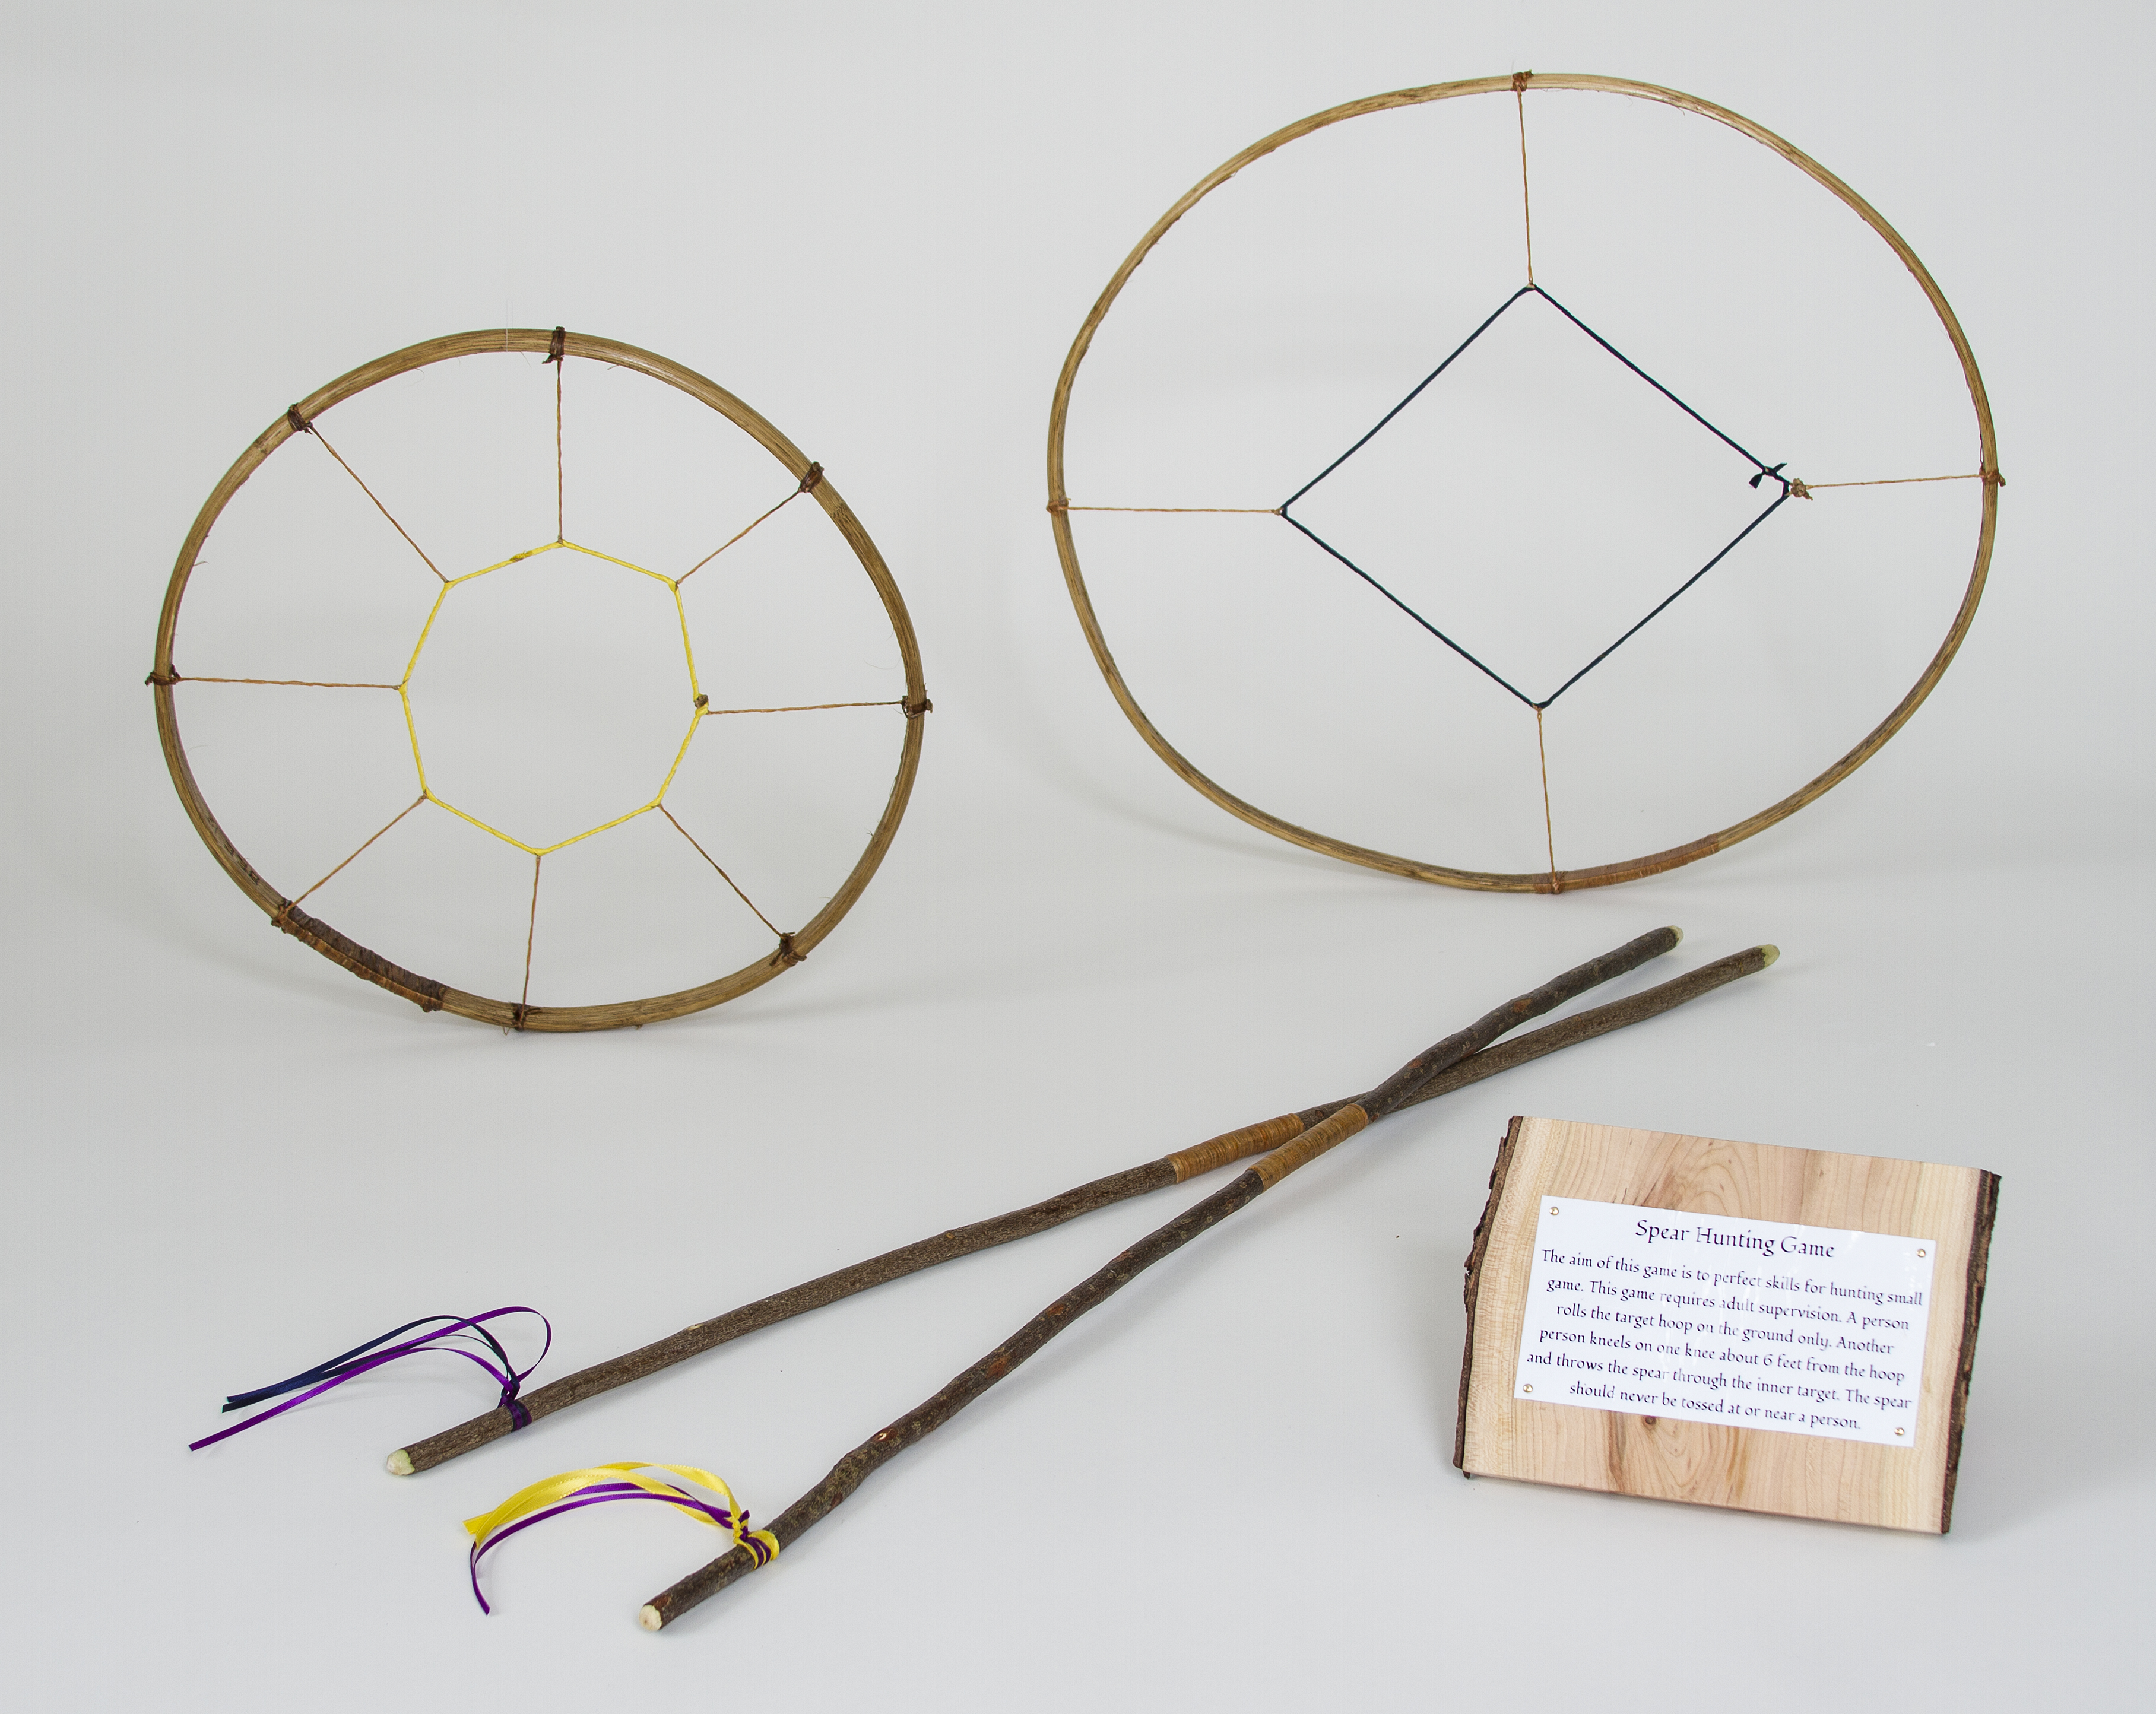 how to make hoop and stick game